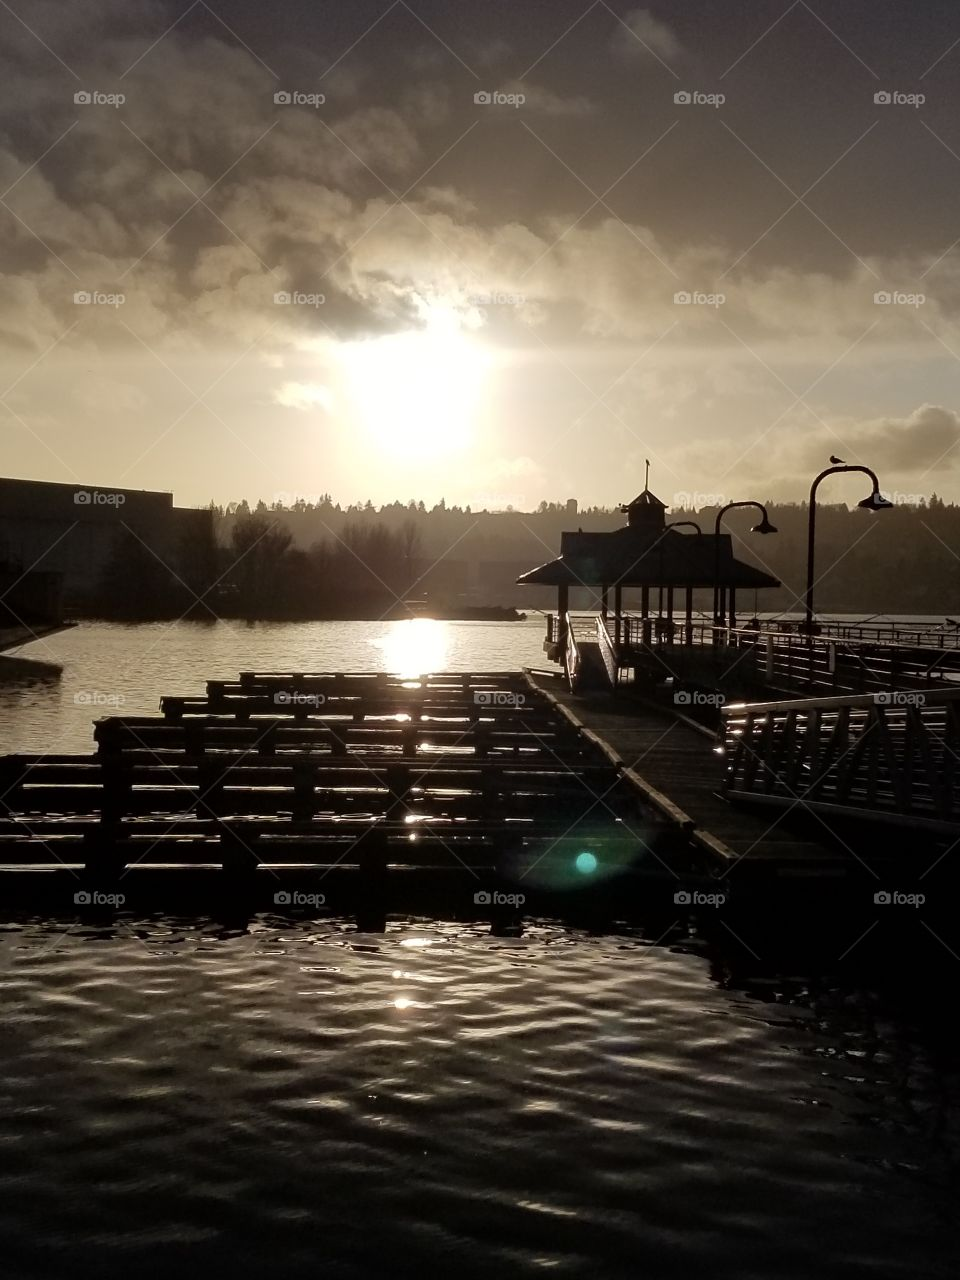 This is a very beautiful picture of a small pier looking over lake Washington in the later hours of the day.